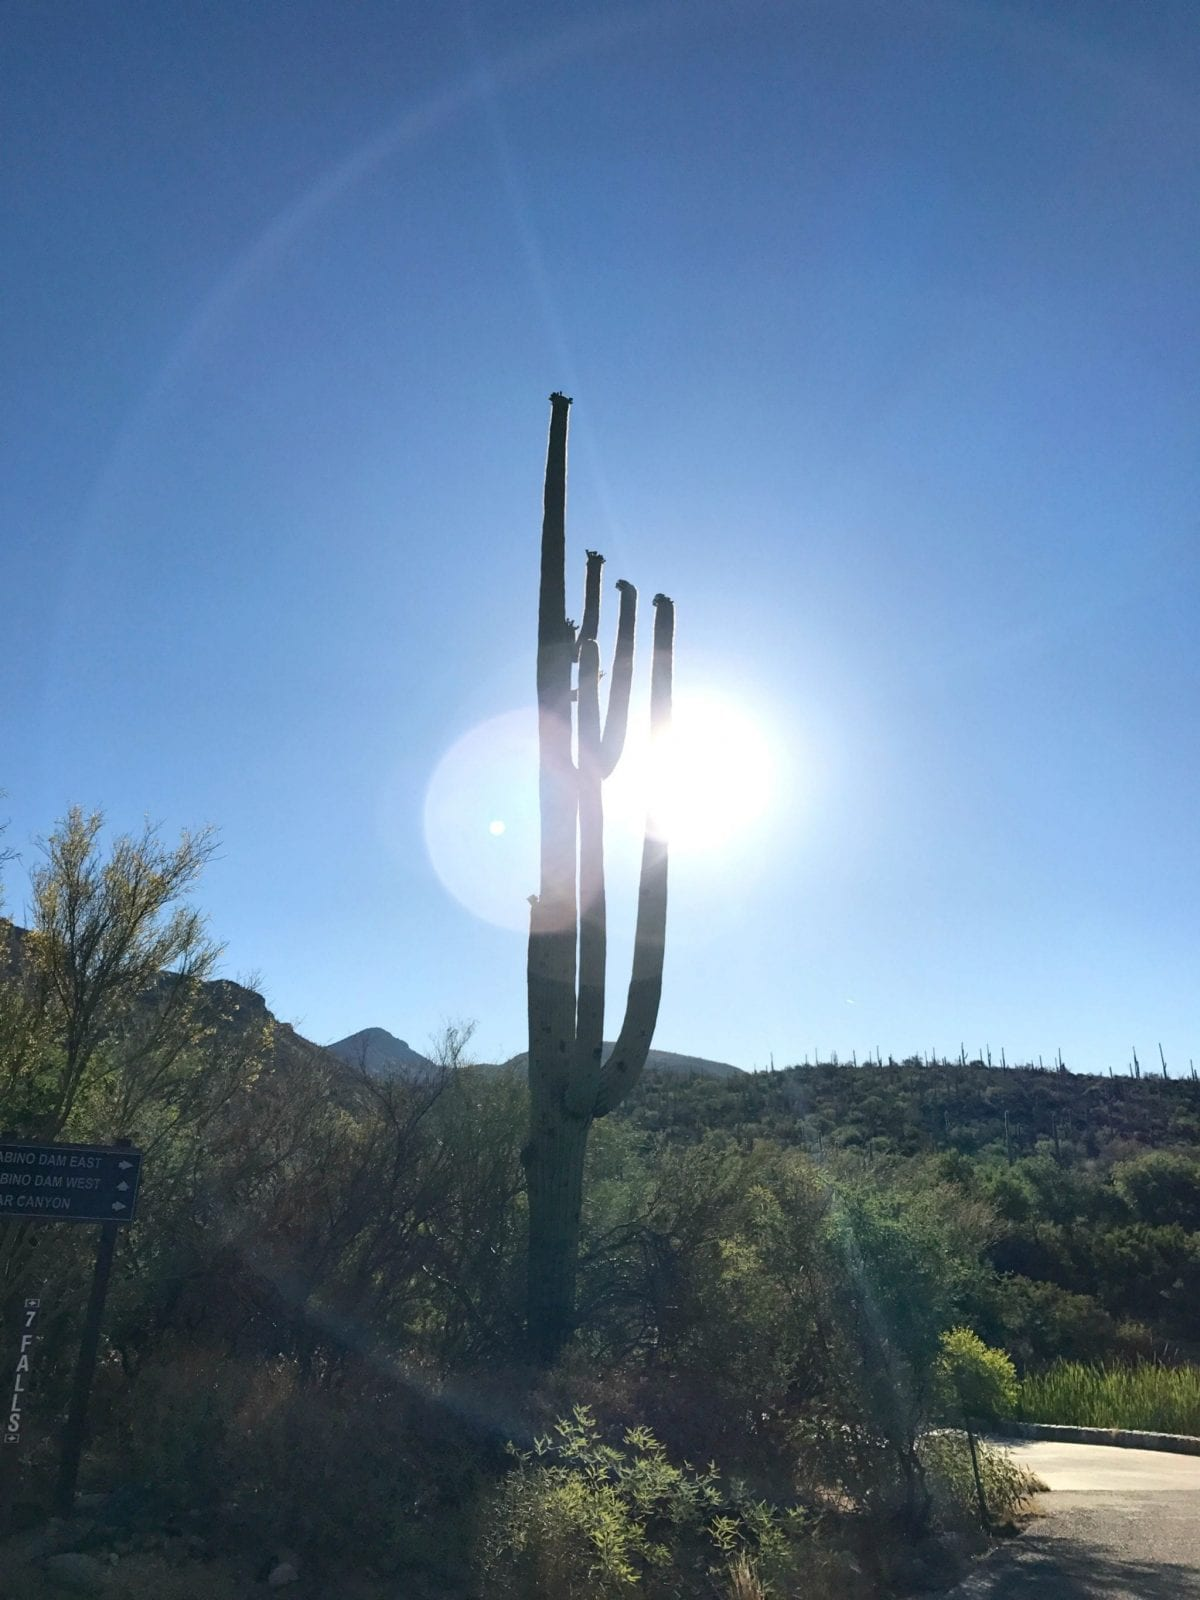 This is a close up shot of the saguaros in Sabino Canyon.